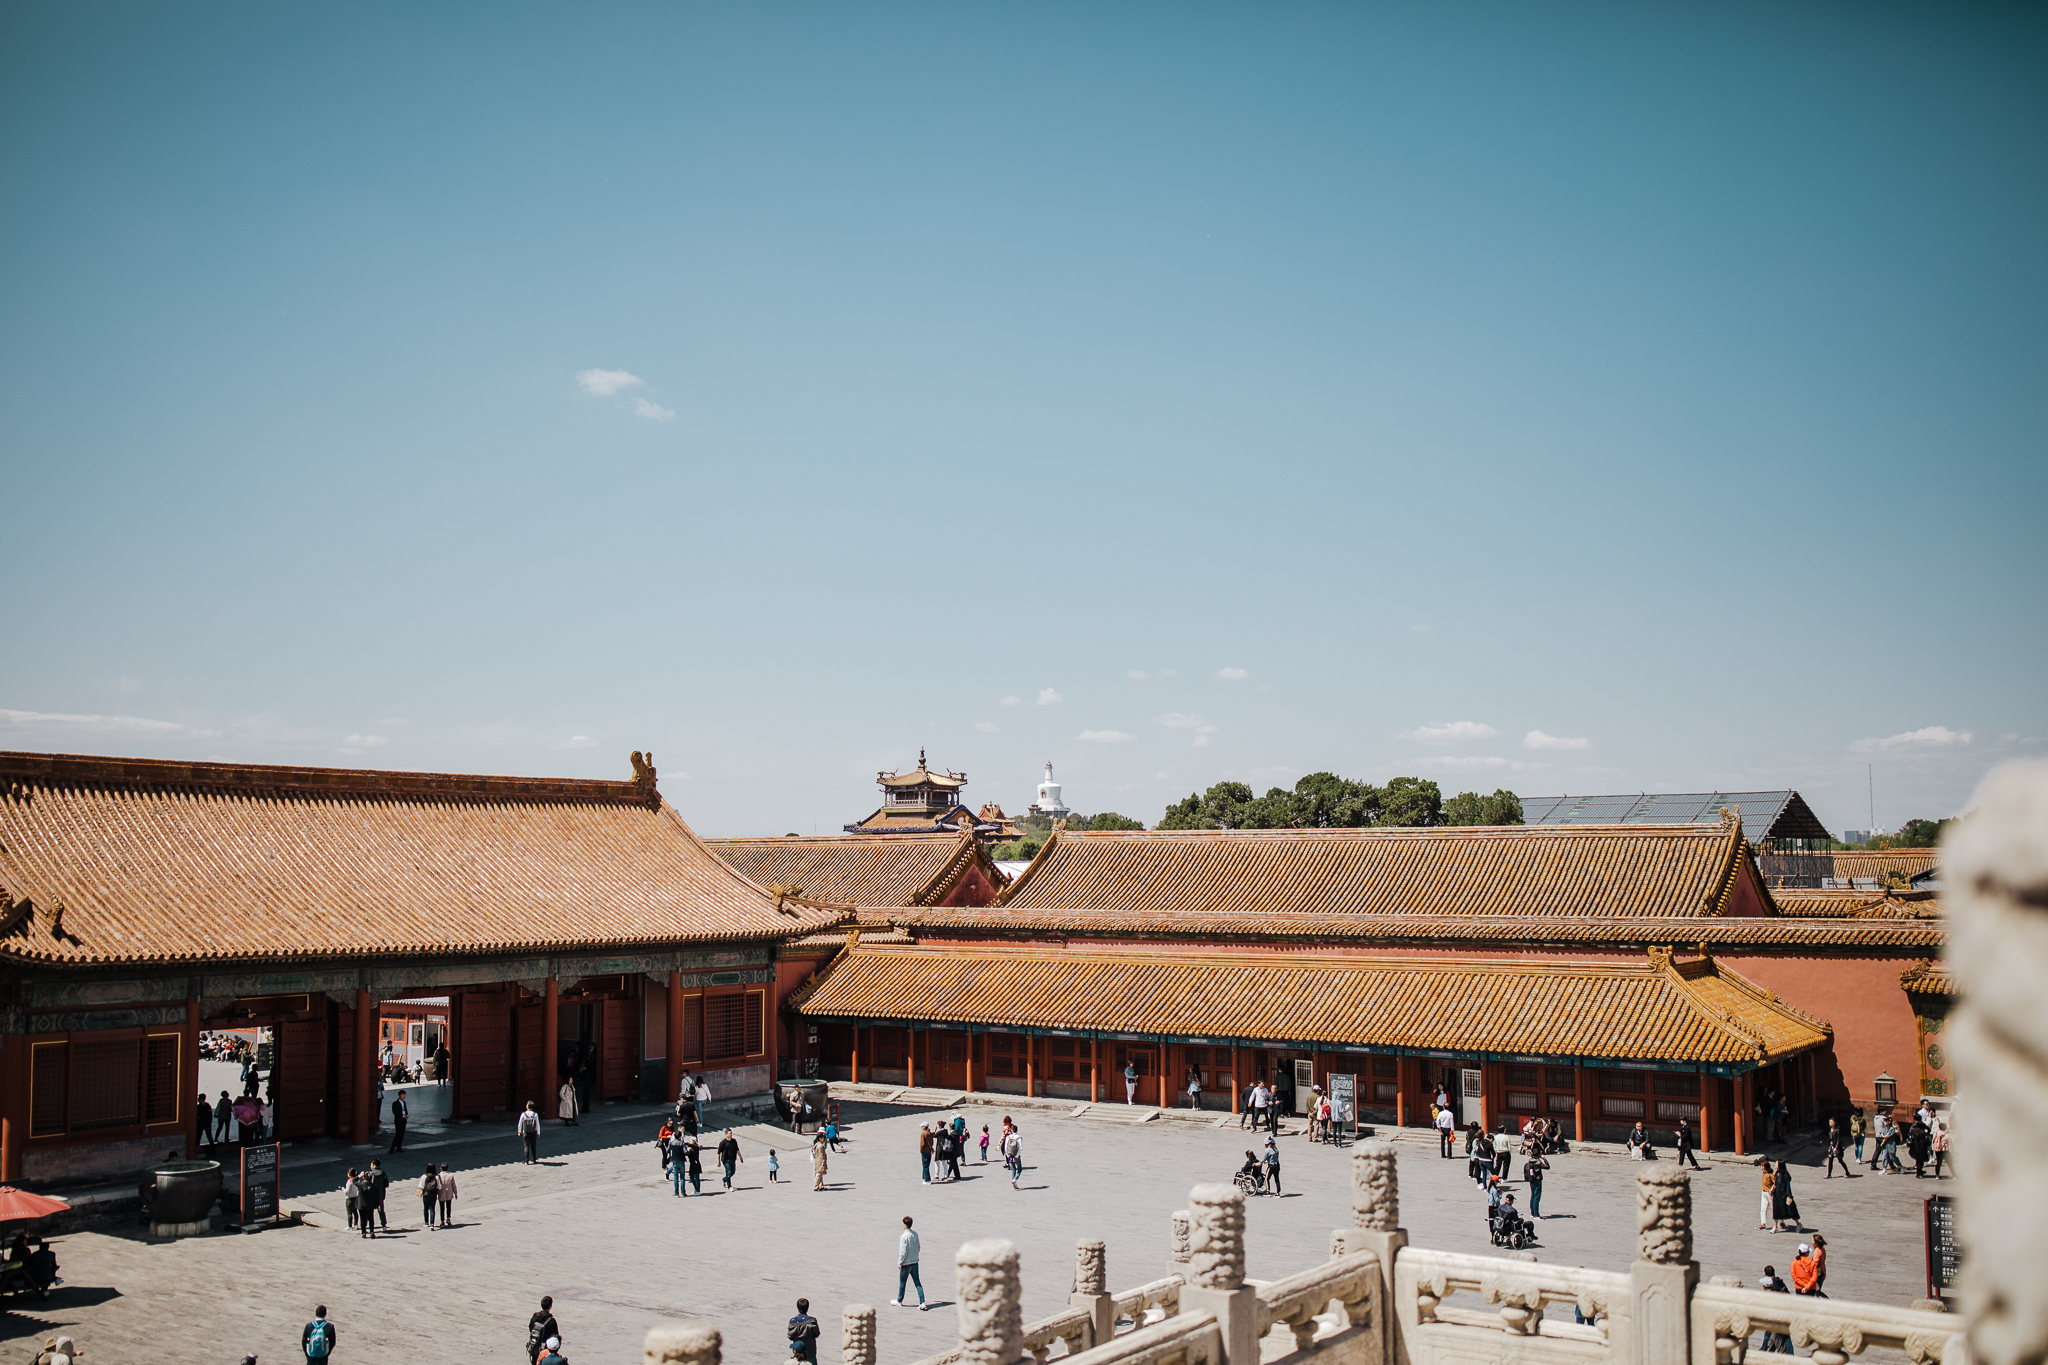 Mutianyu, Great Wall of China,  Beijing, Forbidden City, Emperors Summer Palace (23 of 51).jpg